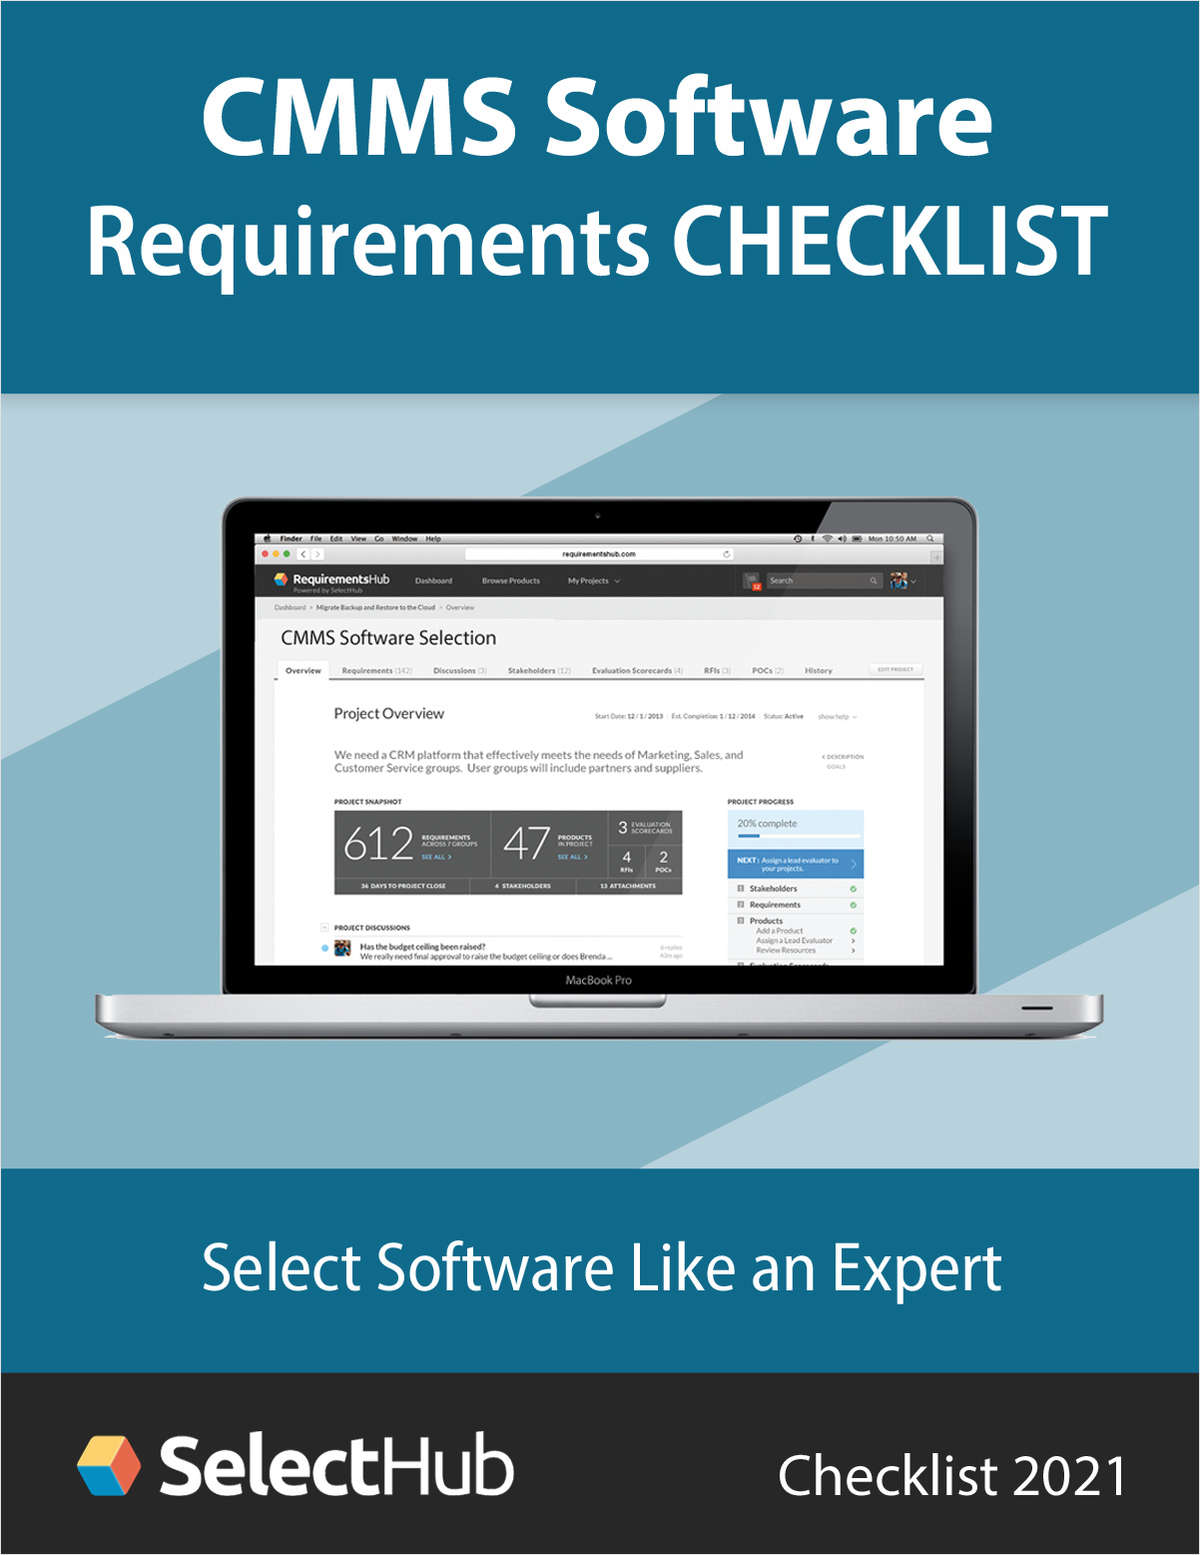 CMMS Software Requirements Checklist for 2021